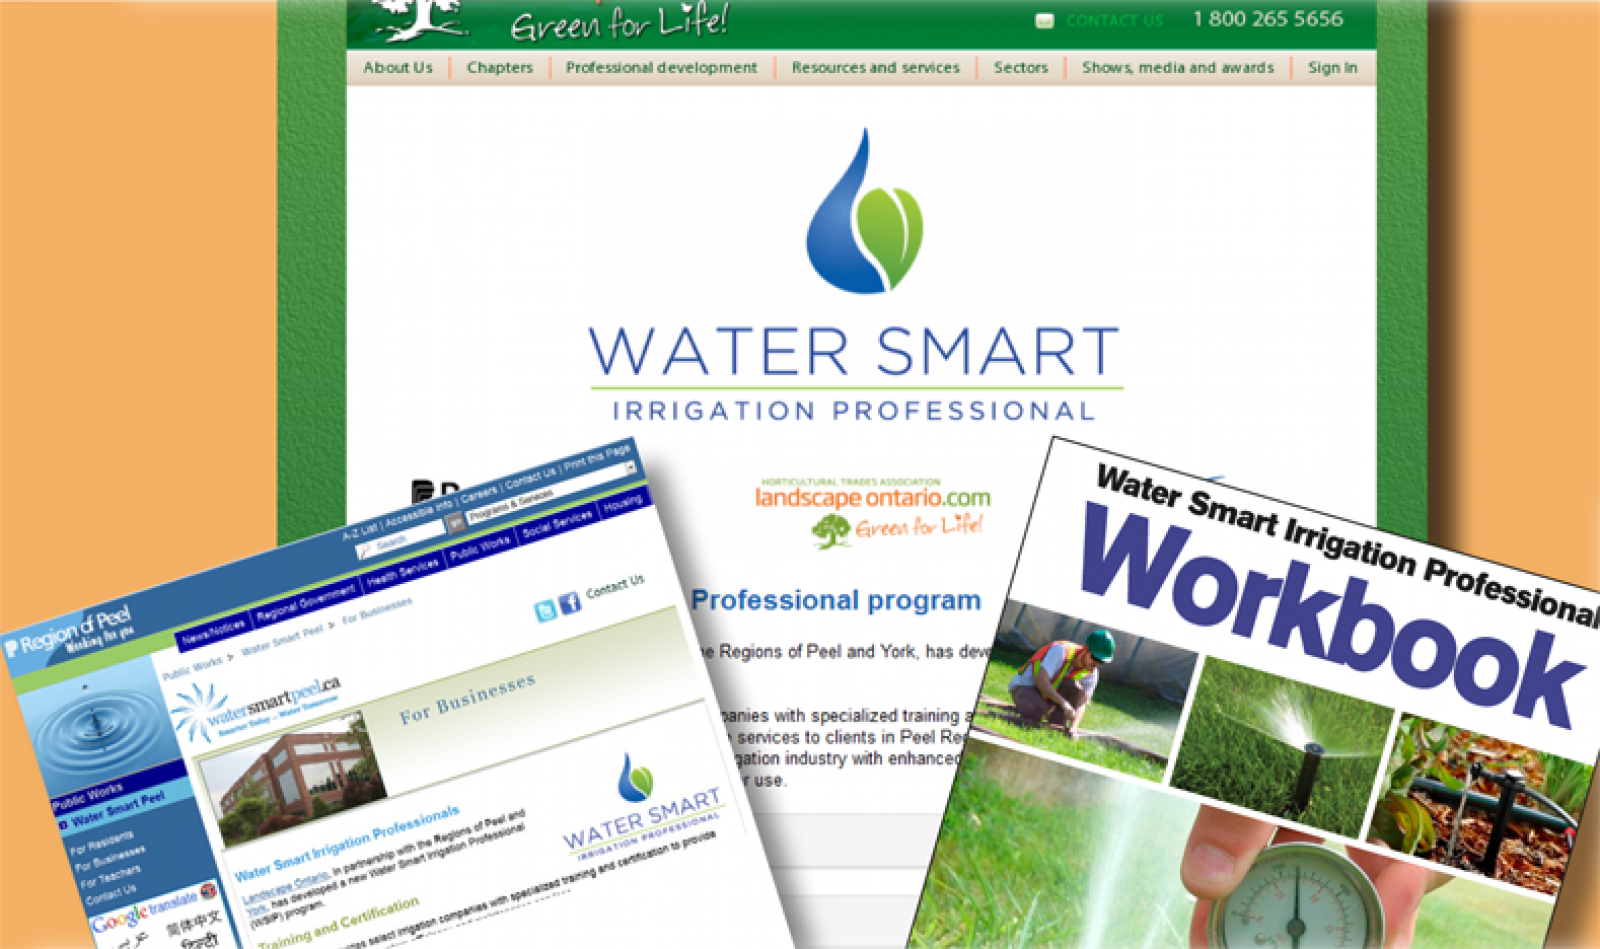 Irrigation Group develops water-smart program with Peel and York